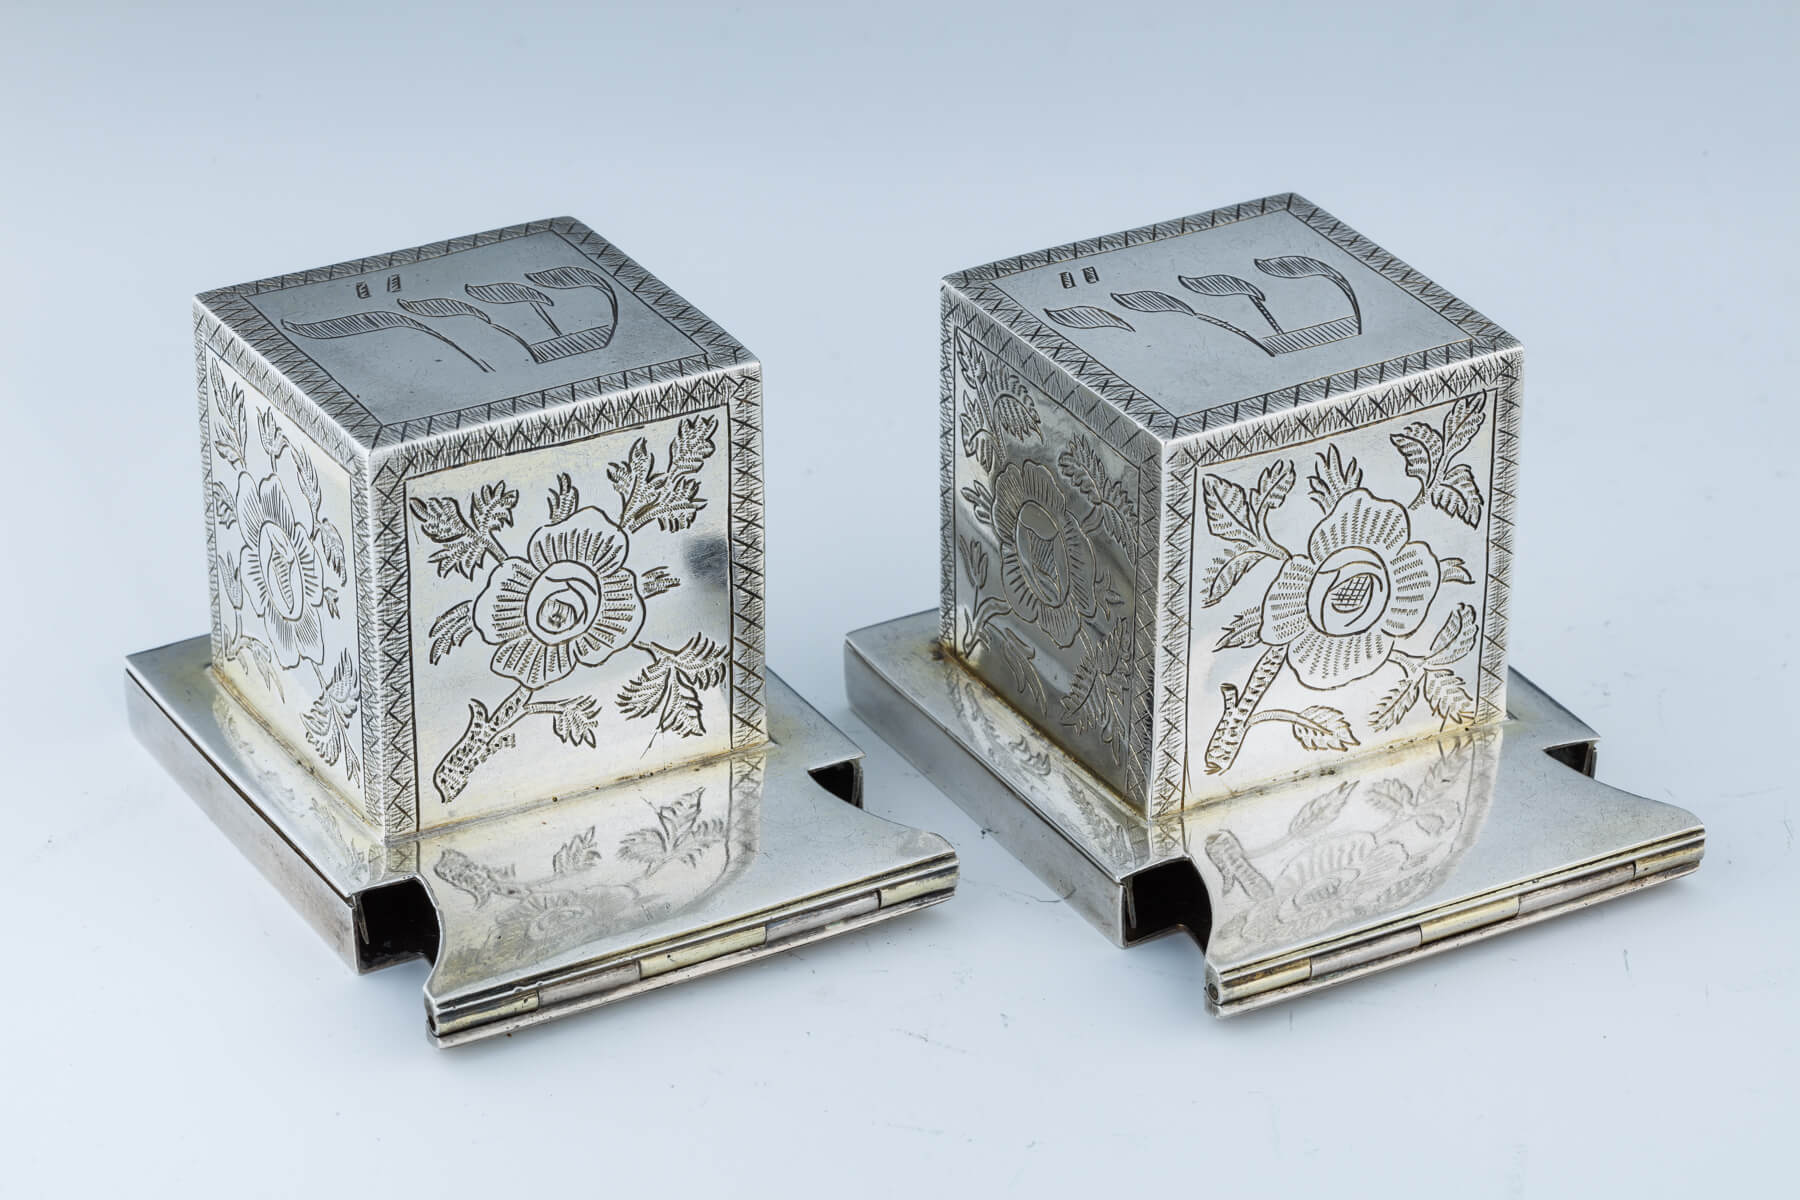 66. A Large Pair Of Silver Tefillin Cases